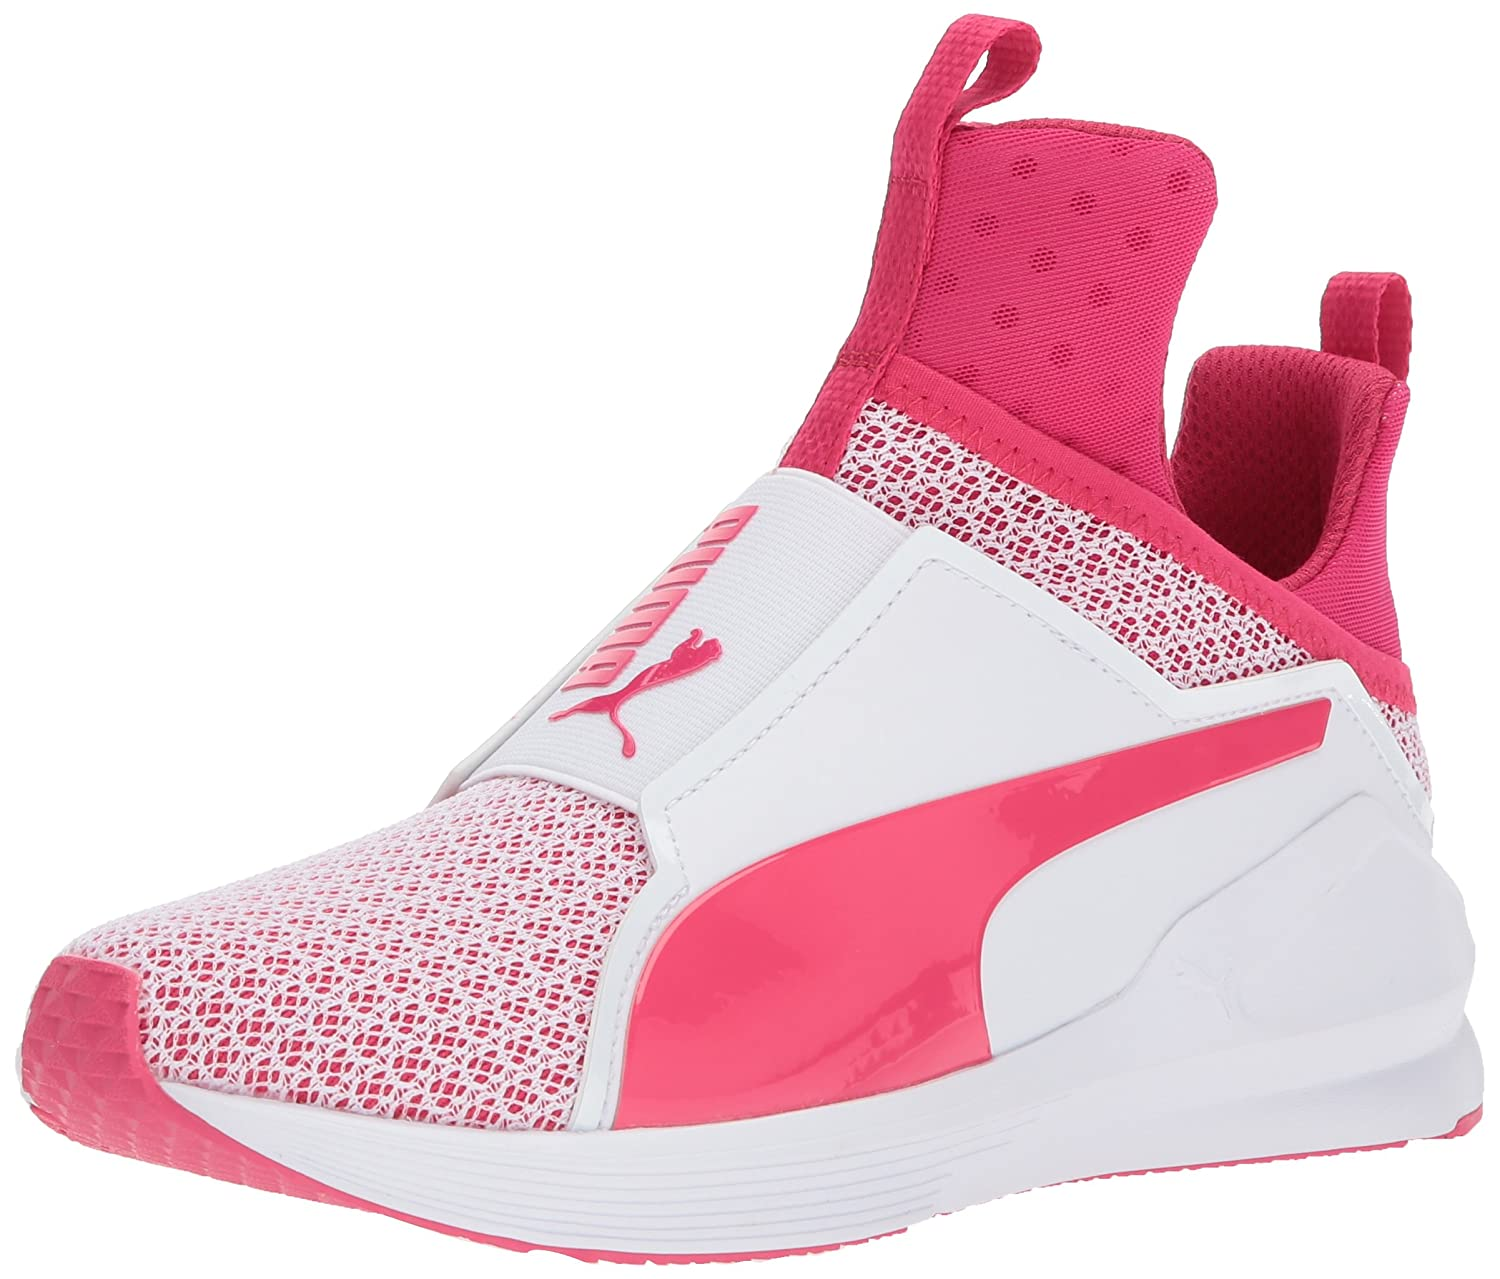 Puma Women's Fierce Culture Surf Sneaker: Amazon.co.uk